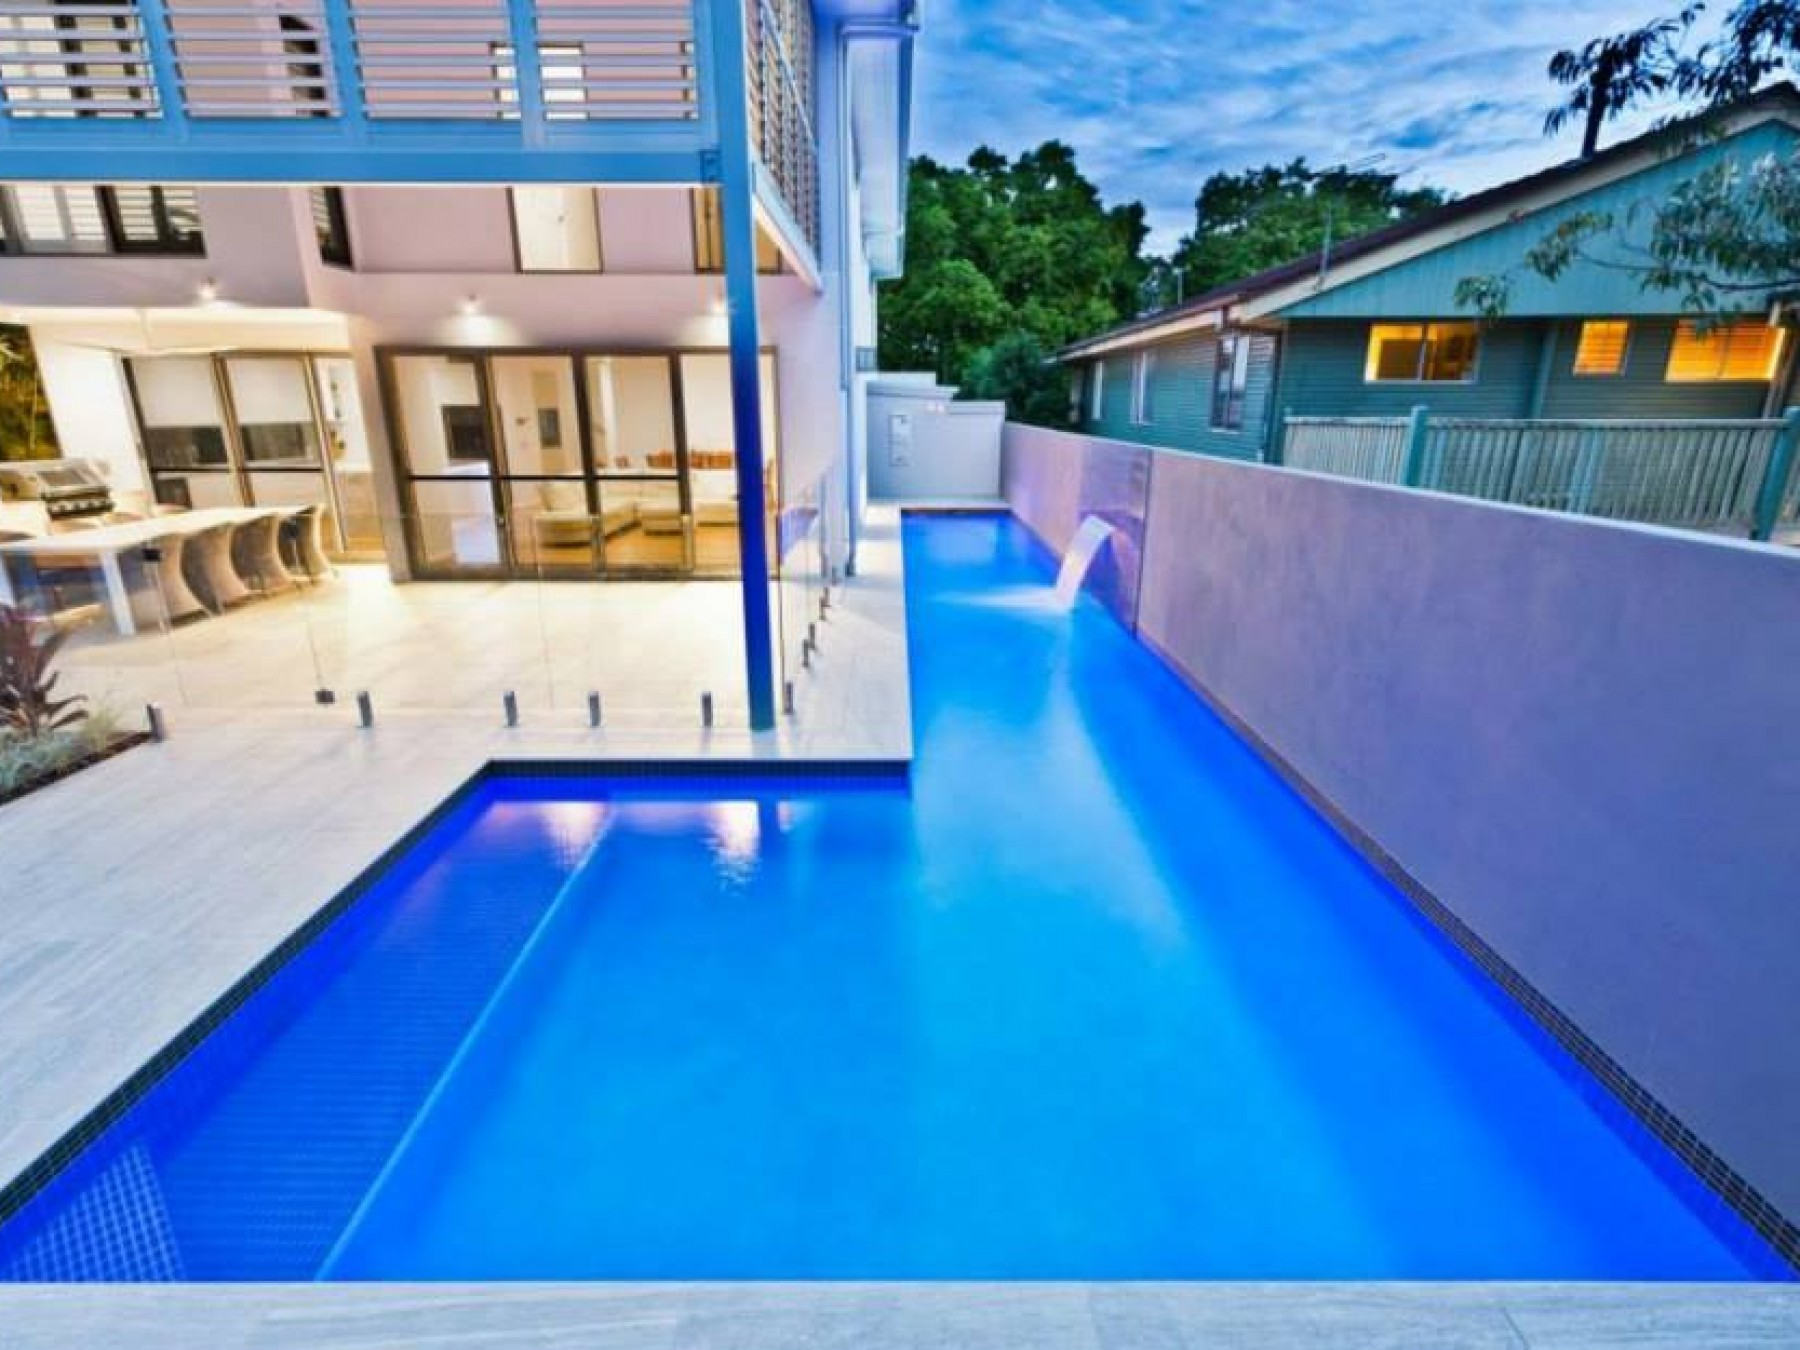 Selling or Leasing a pool in Bellbowrie